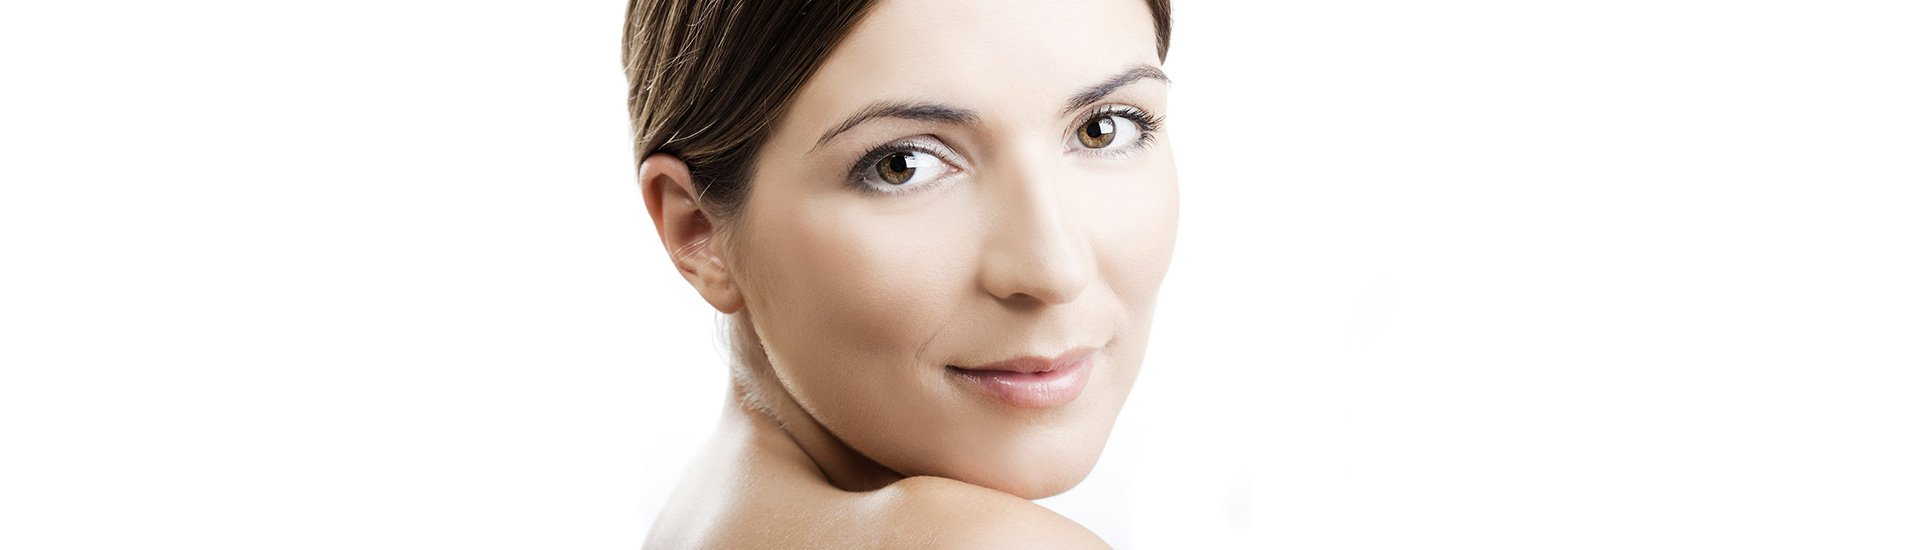 a lady with blemish-free skin